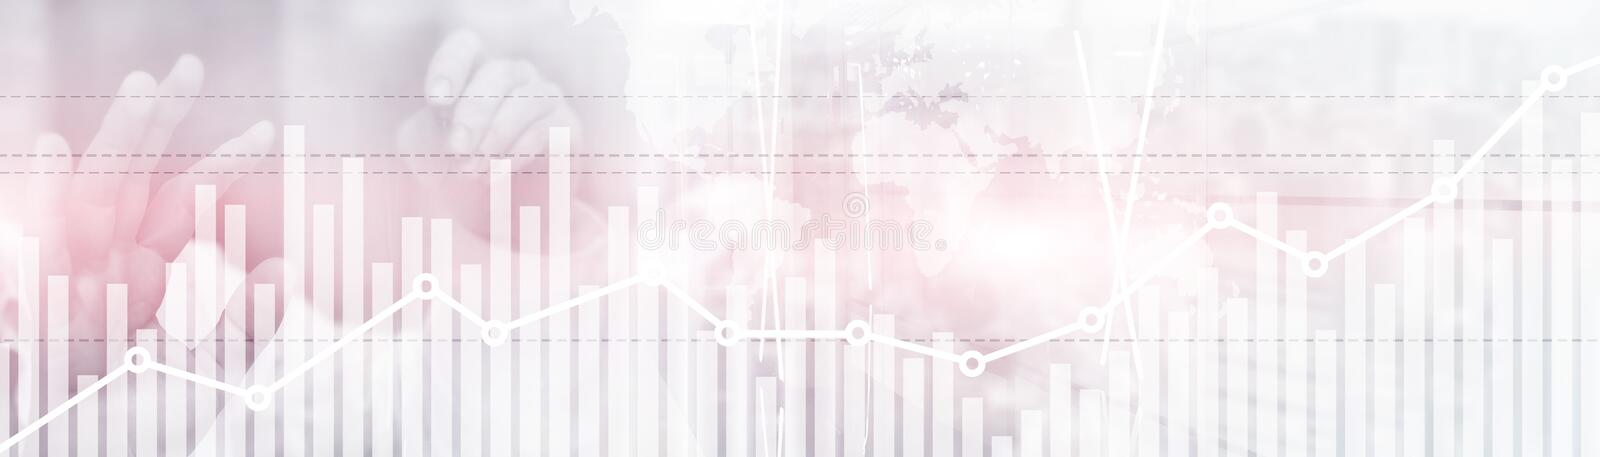 Double exposure global world map on business financial stock market trading background.  stock photos